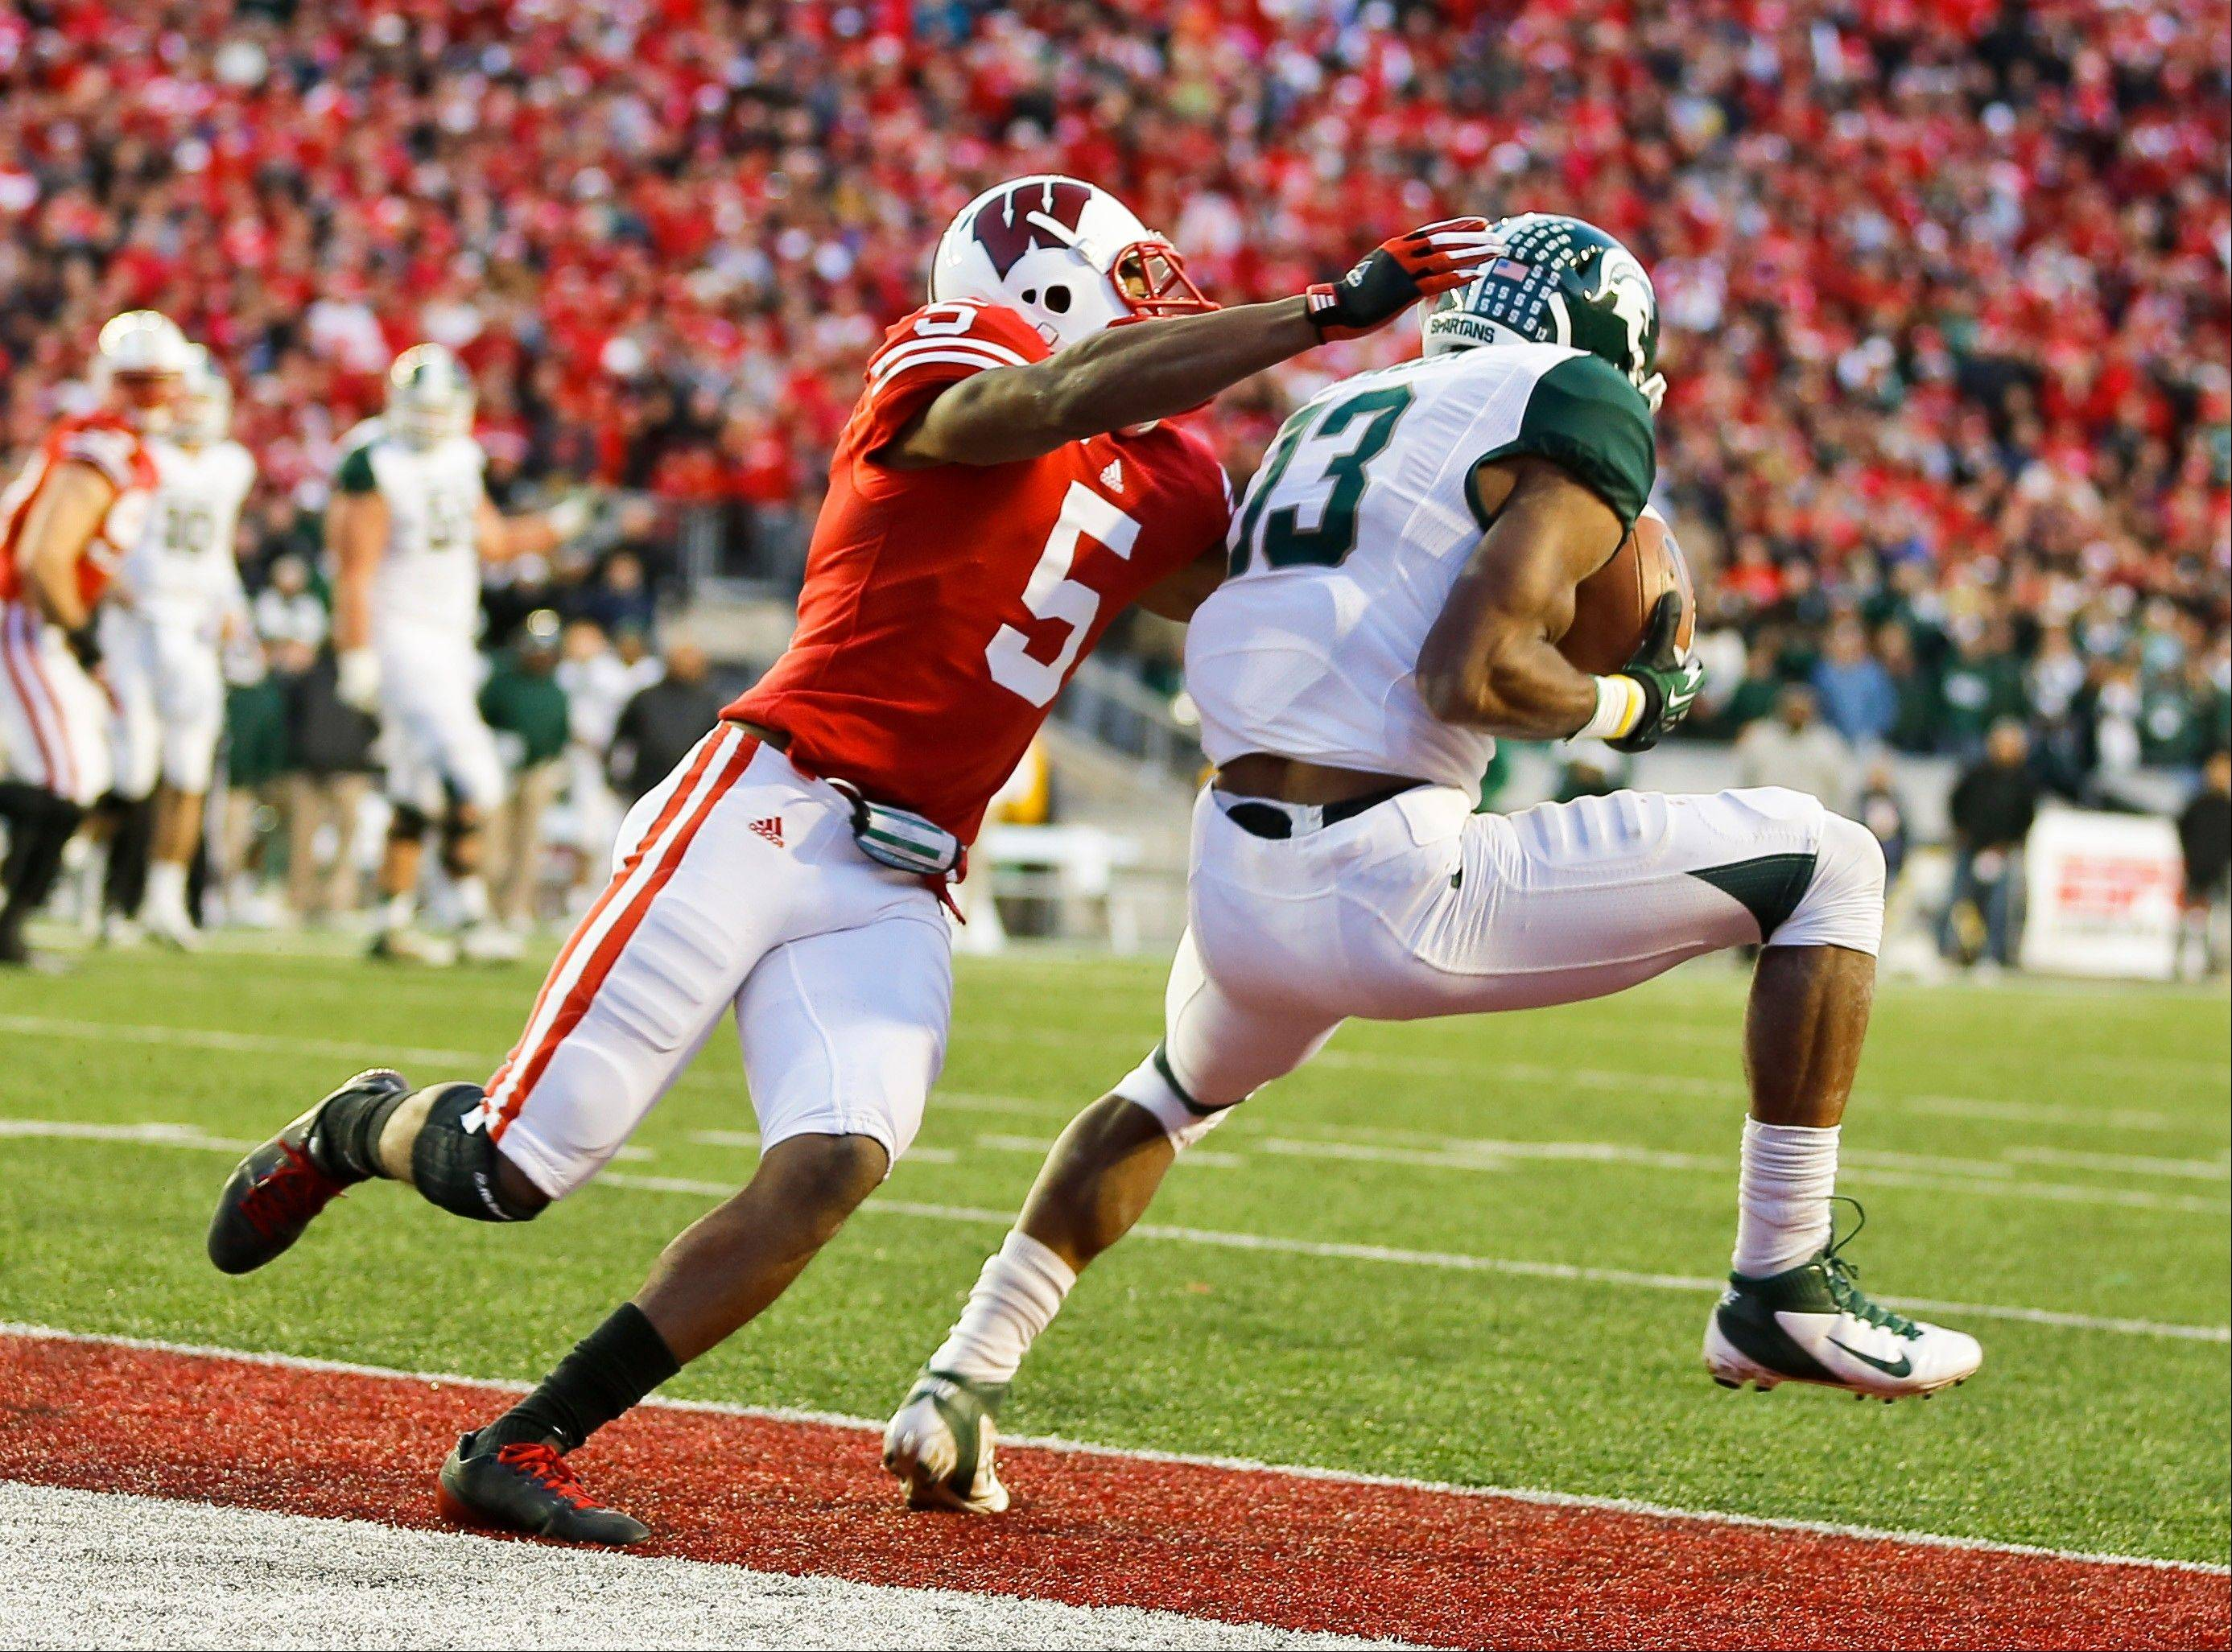 Michigan State wide receiver Bennie Fowler (13) makes the game-winning touchdown catch against Wisconsin defensive back Darius Hillary (5) in overtime in an NCAA college football game Saturday, Oct. 27, 2012, in Madison, Wis. Michigan State won 16-13. (AP Photo/Andy Manis)